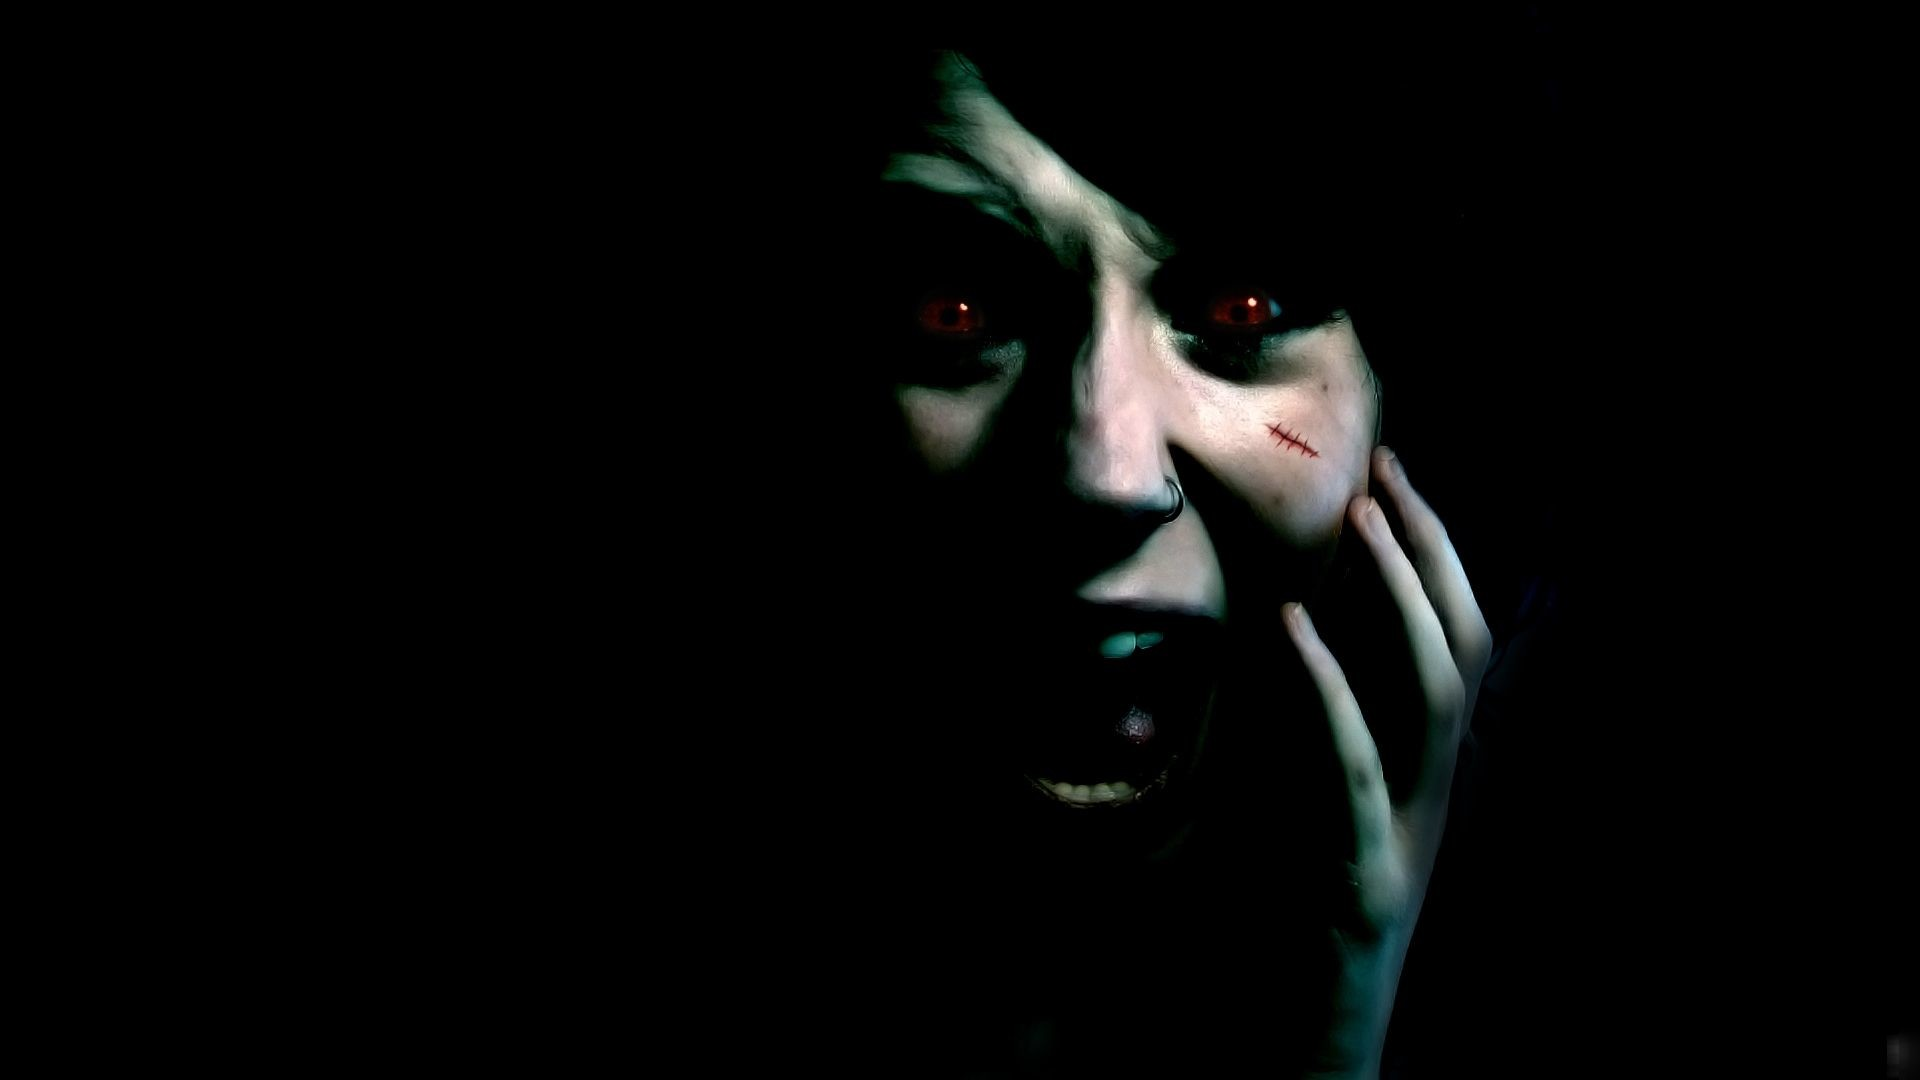 Res: 1920x1080, Scary Wallpapers Wallpaper Cave - HD Wallpapers